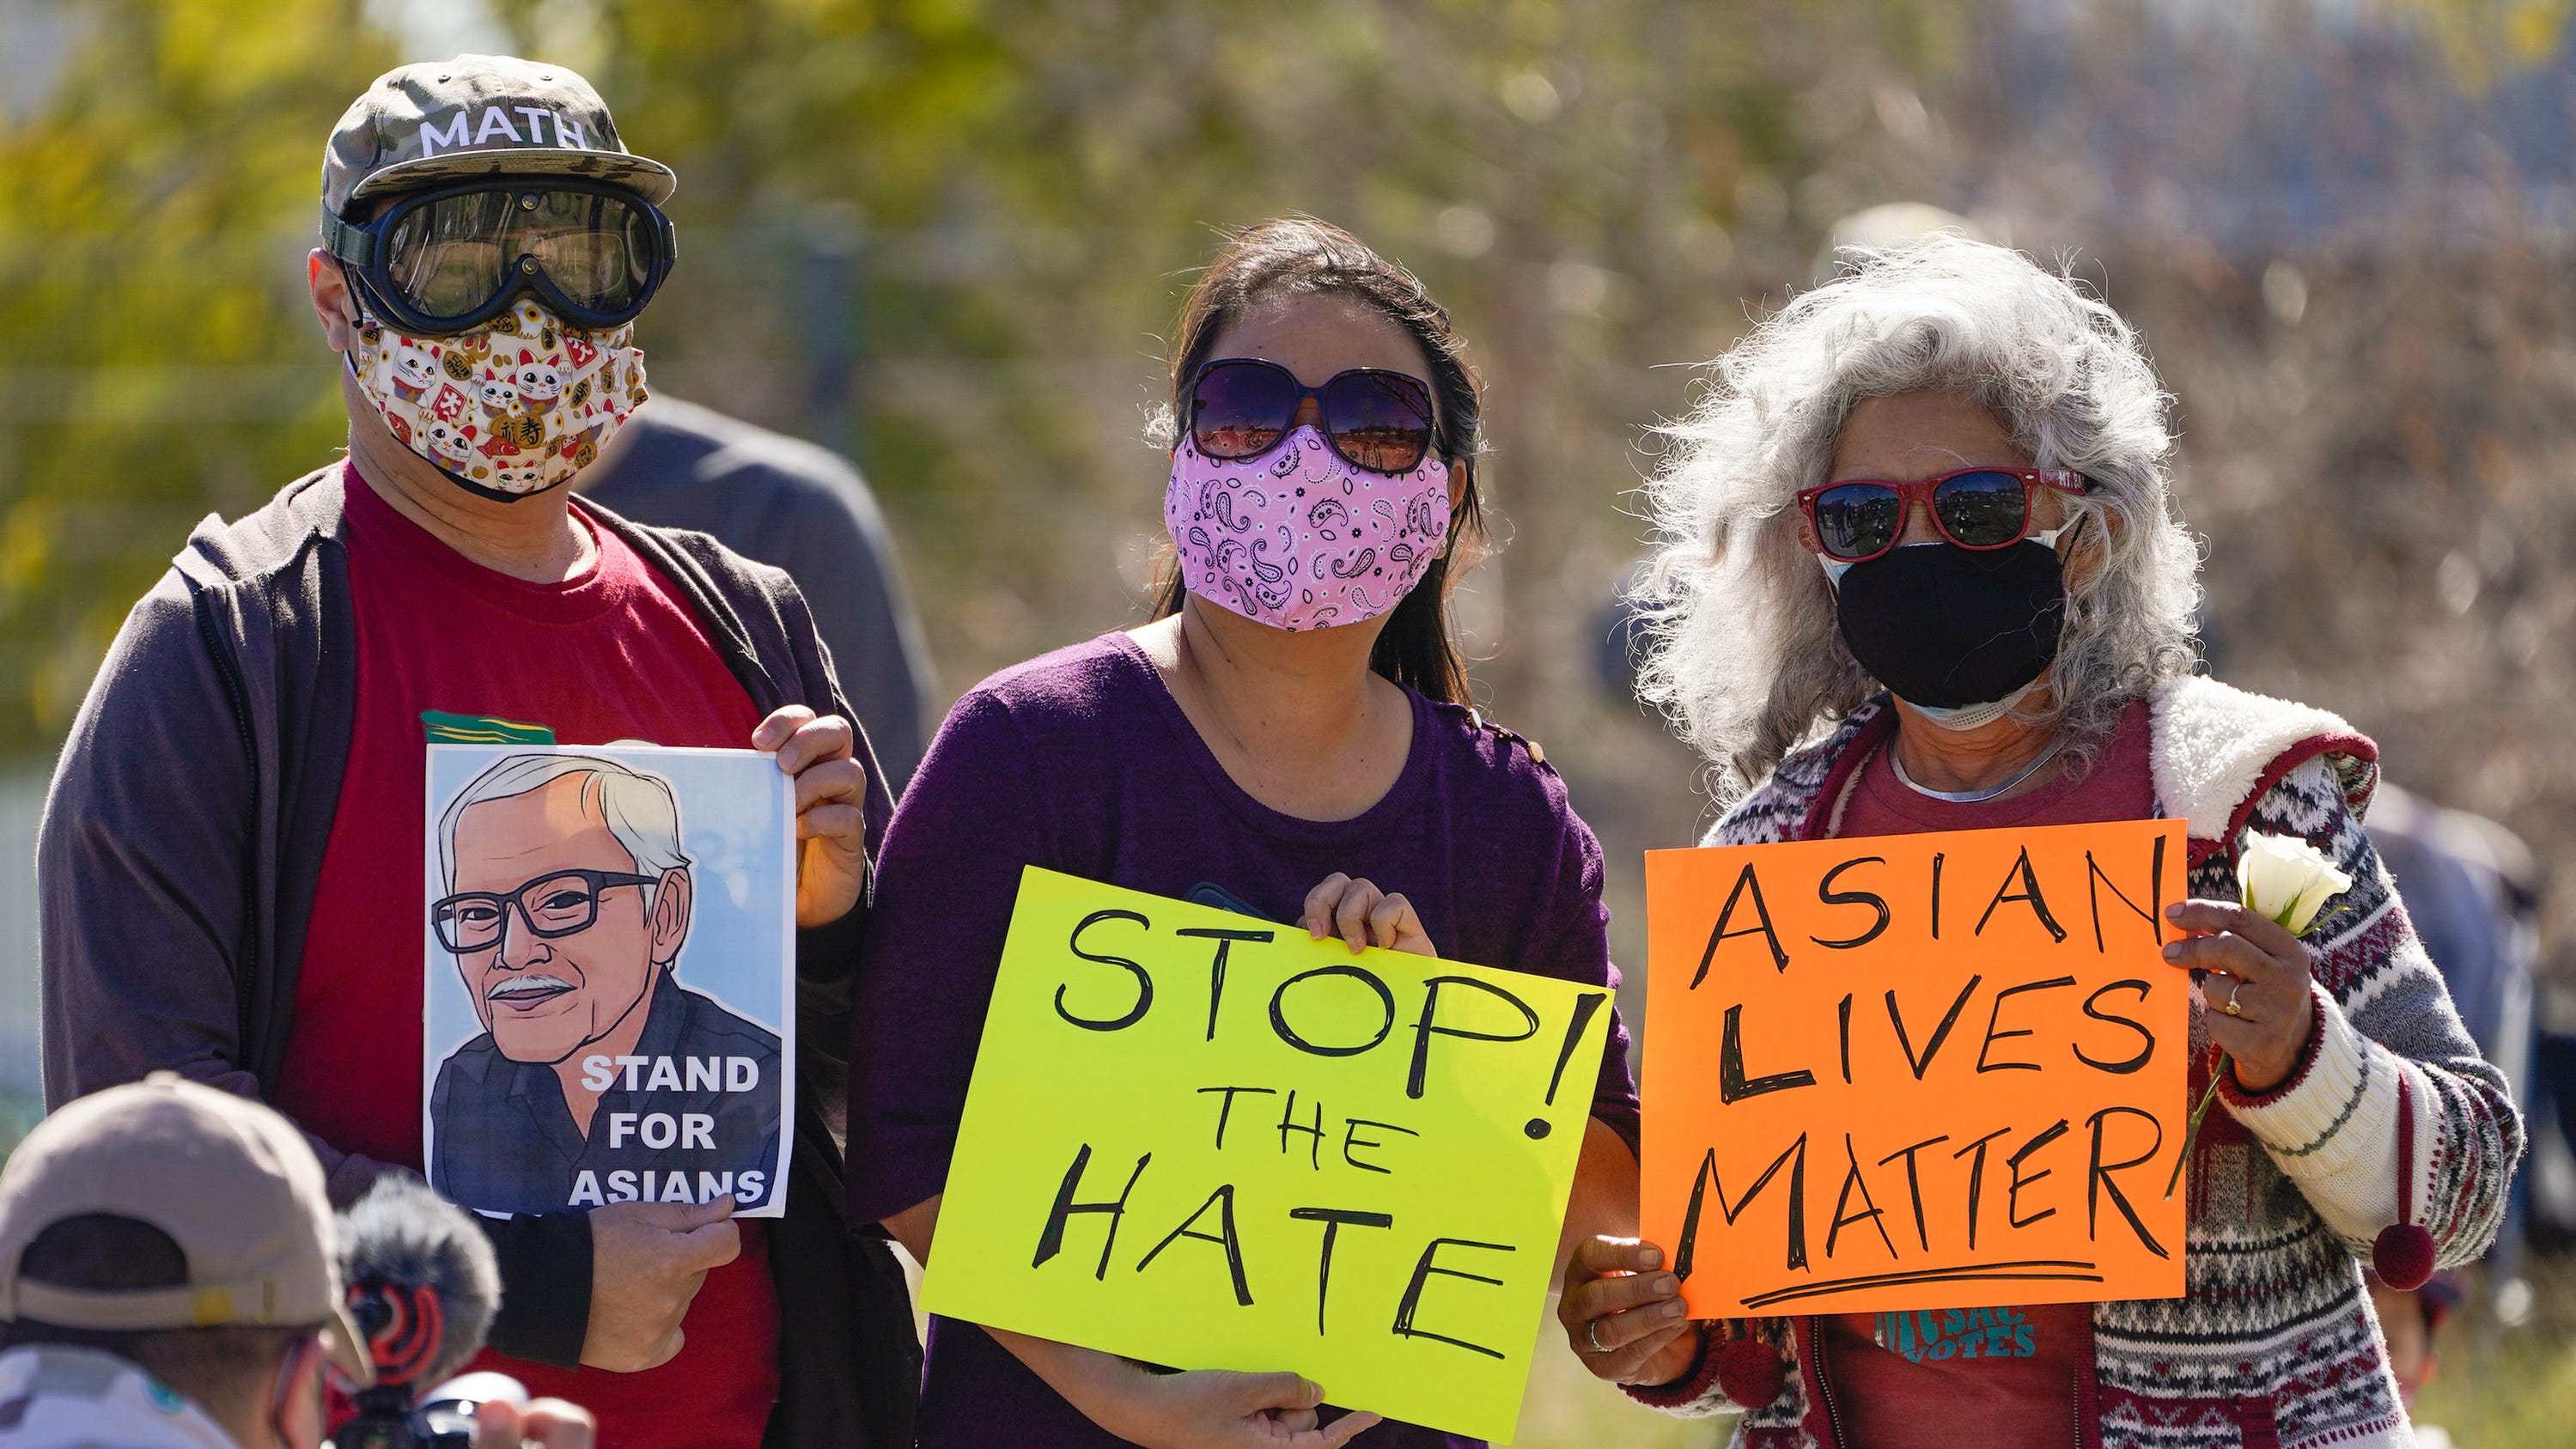 www.usatoday.com: Hate crimes against Asian Americans are on the rise. Here's what activists, lawmakers and police are doing to stop the violence